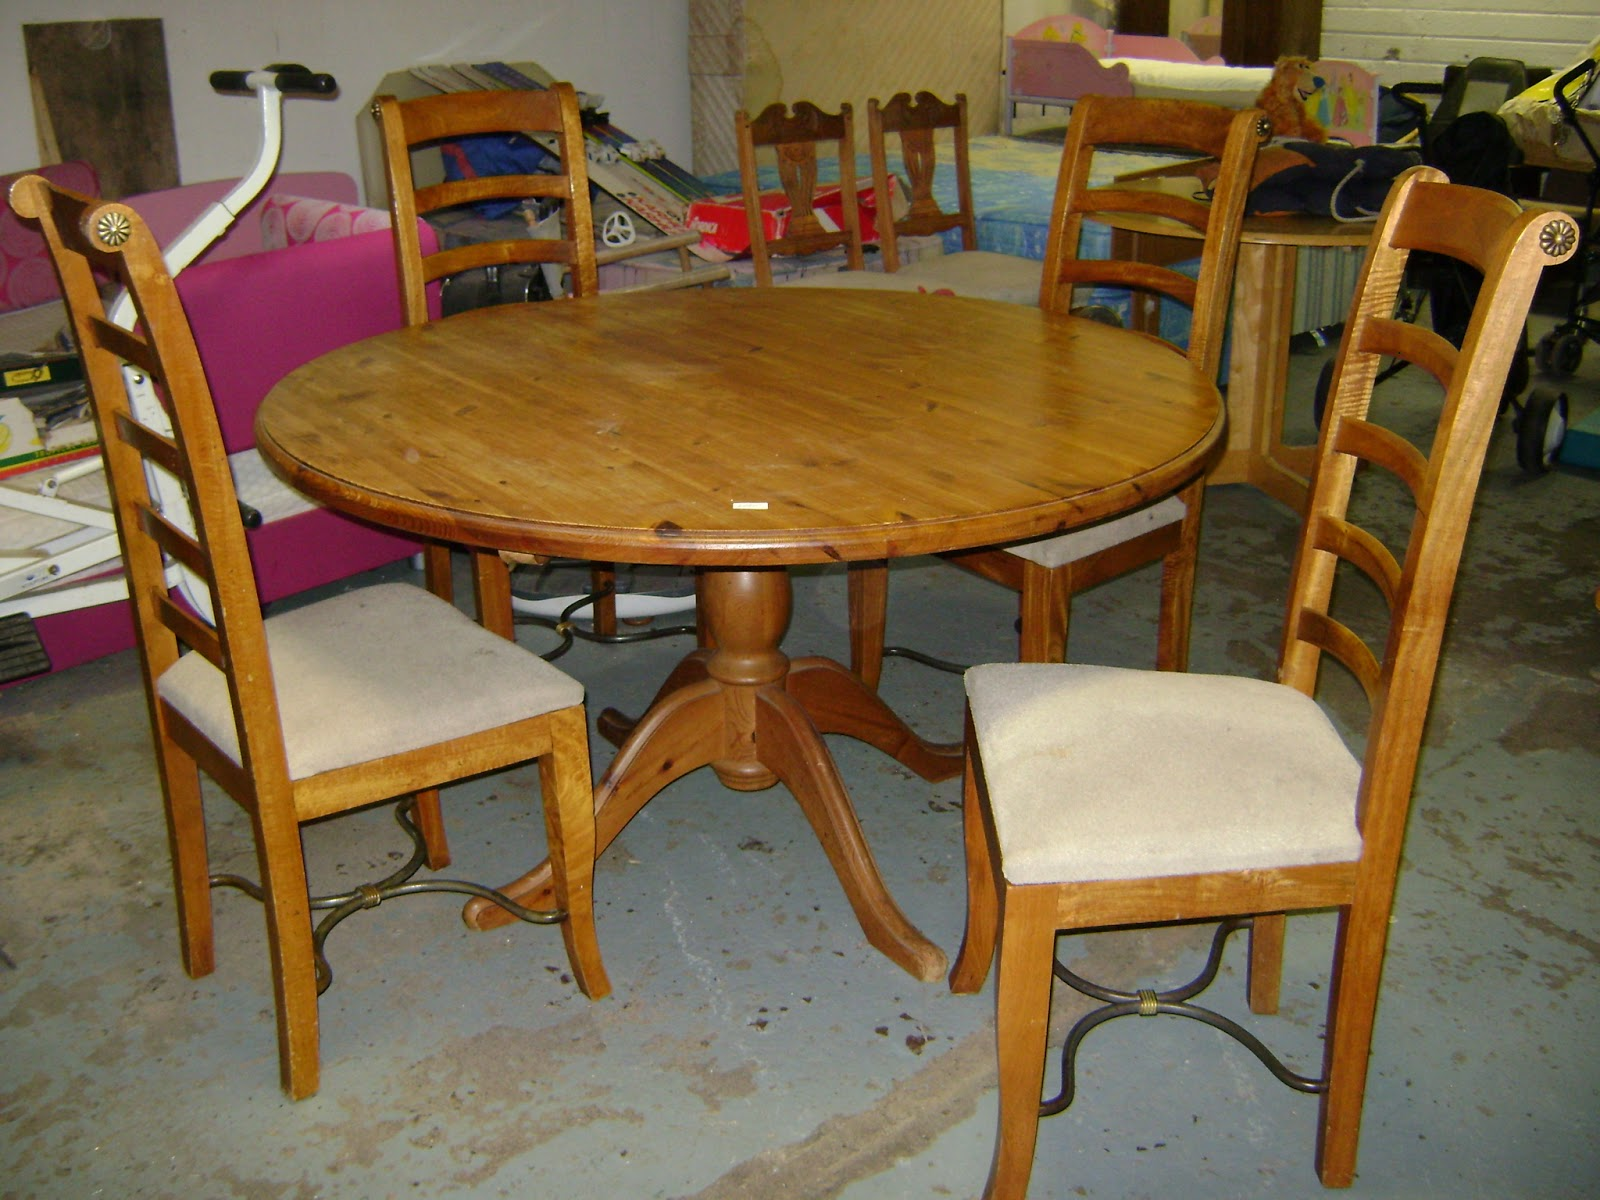 Deccie S Done Deal Second Hand Furniture House Clearances New Stock Update 10th May 2013 Bed S Tables Chairs Sinks Bedside Lockers X8 Kitchen Press